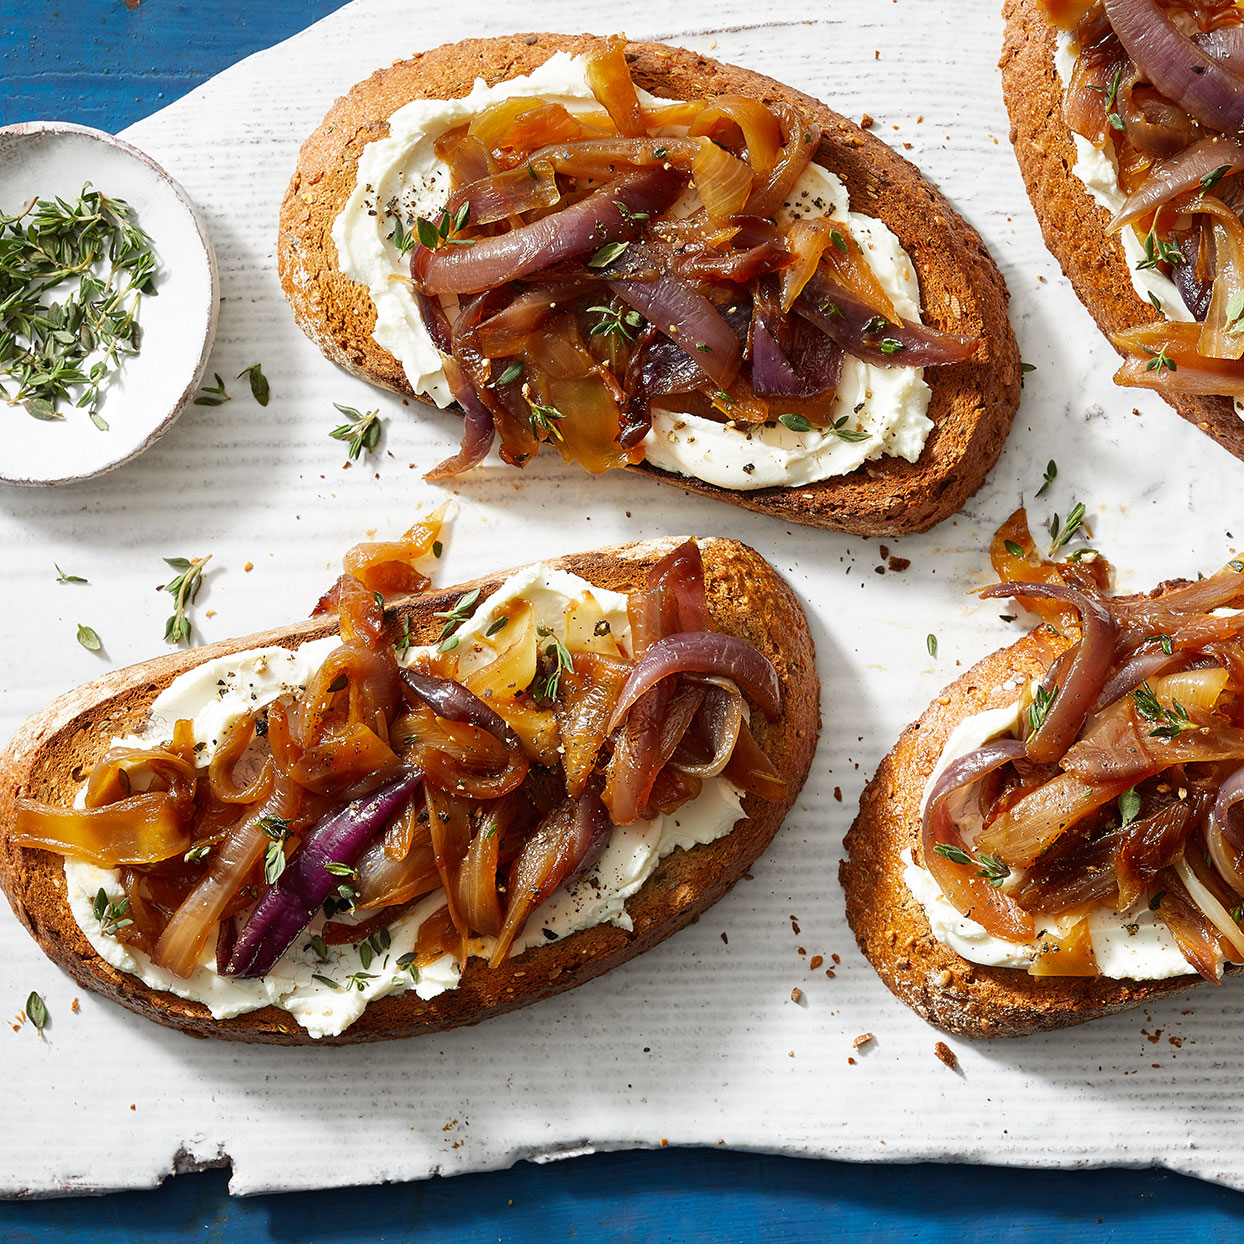 Sweet caramelized onions and creamy goat cheese team up in this easy yet elegant dish that makes a great appetizer or side with soup or salad.